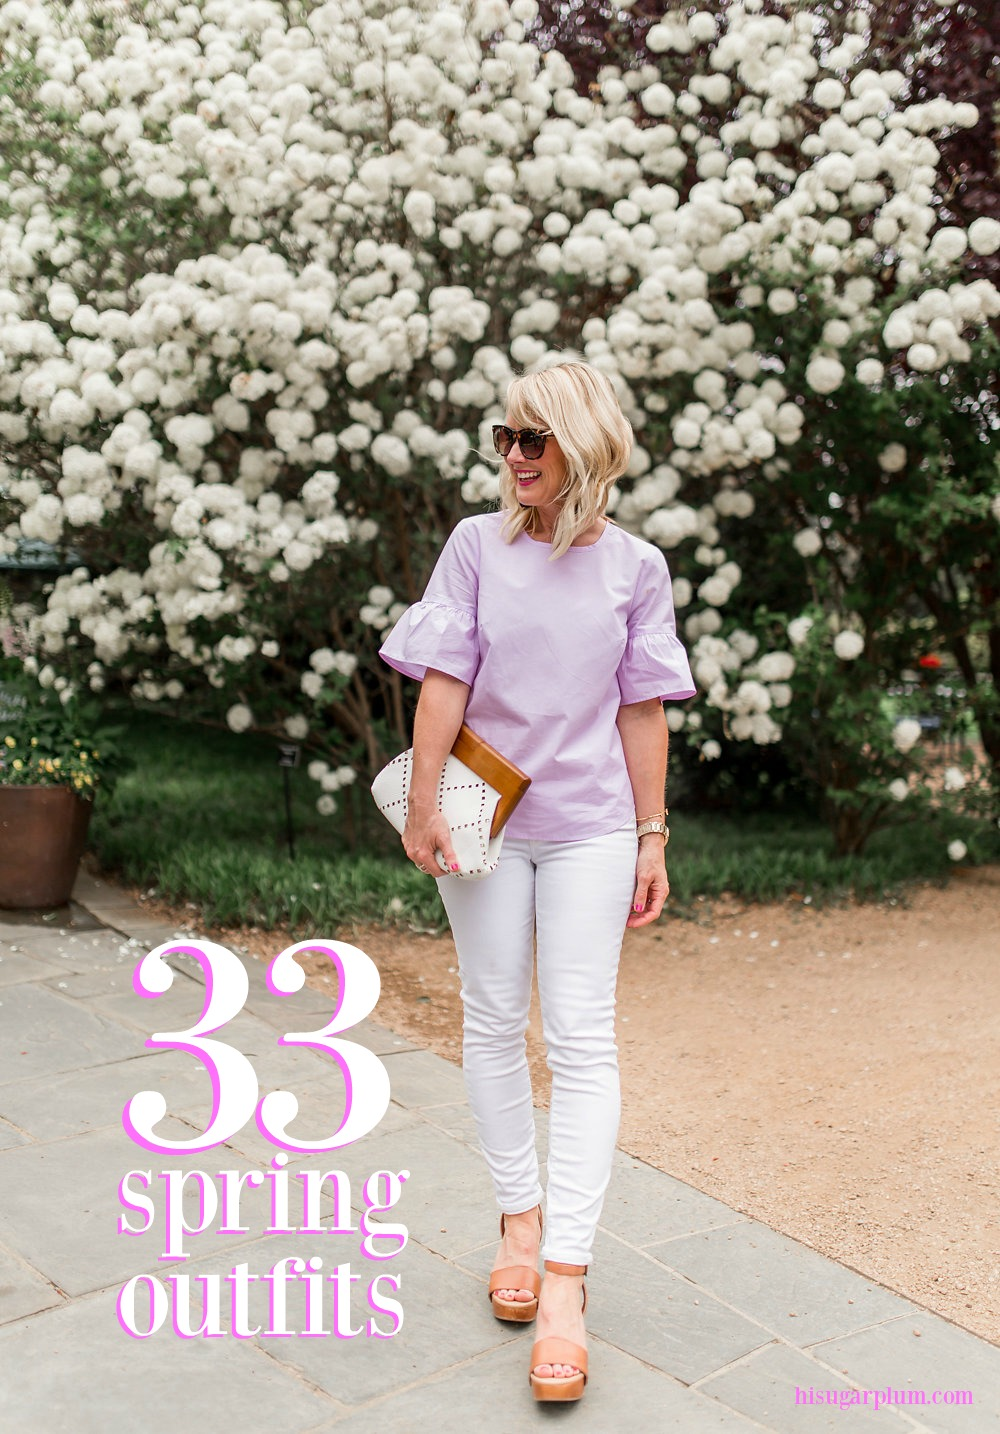 33 spring outfit ideas